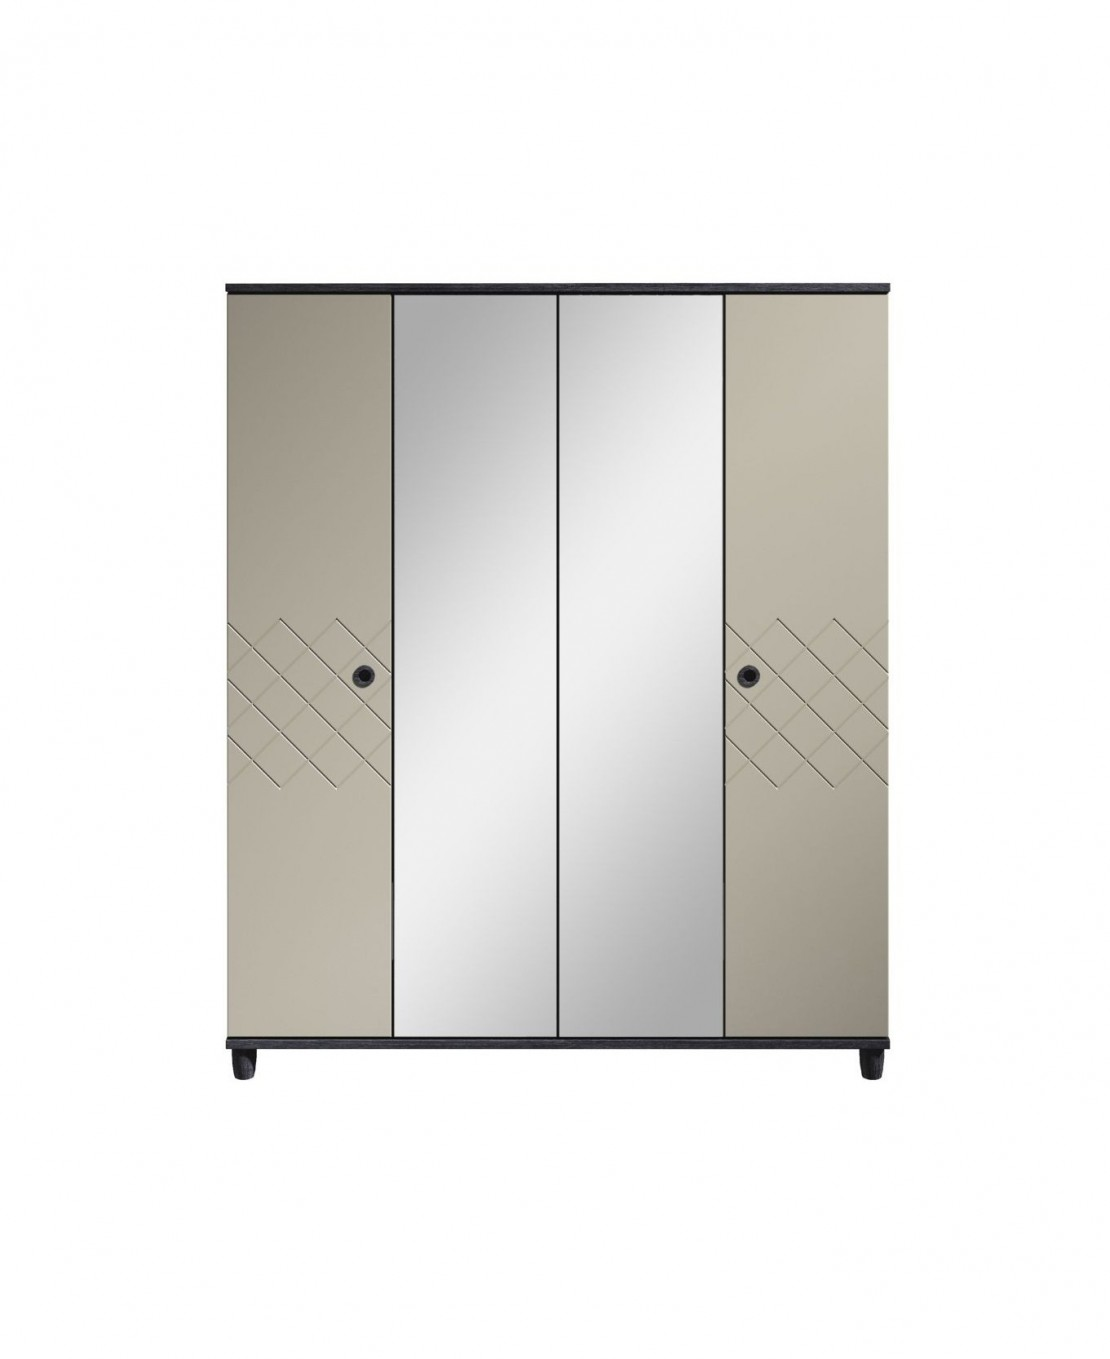 /_images/product-photos/kt-furniture-geo-4-door-mirrored-robe-matt-grey-with-black-oak-carcase-a.jpg